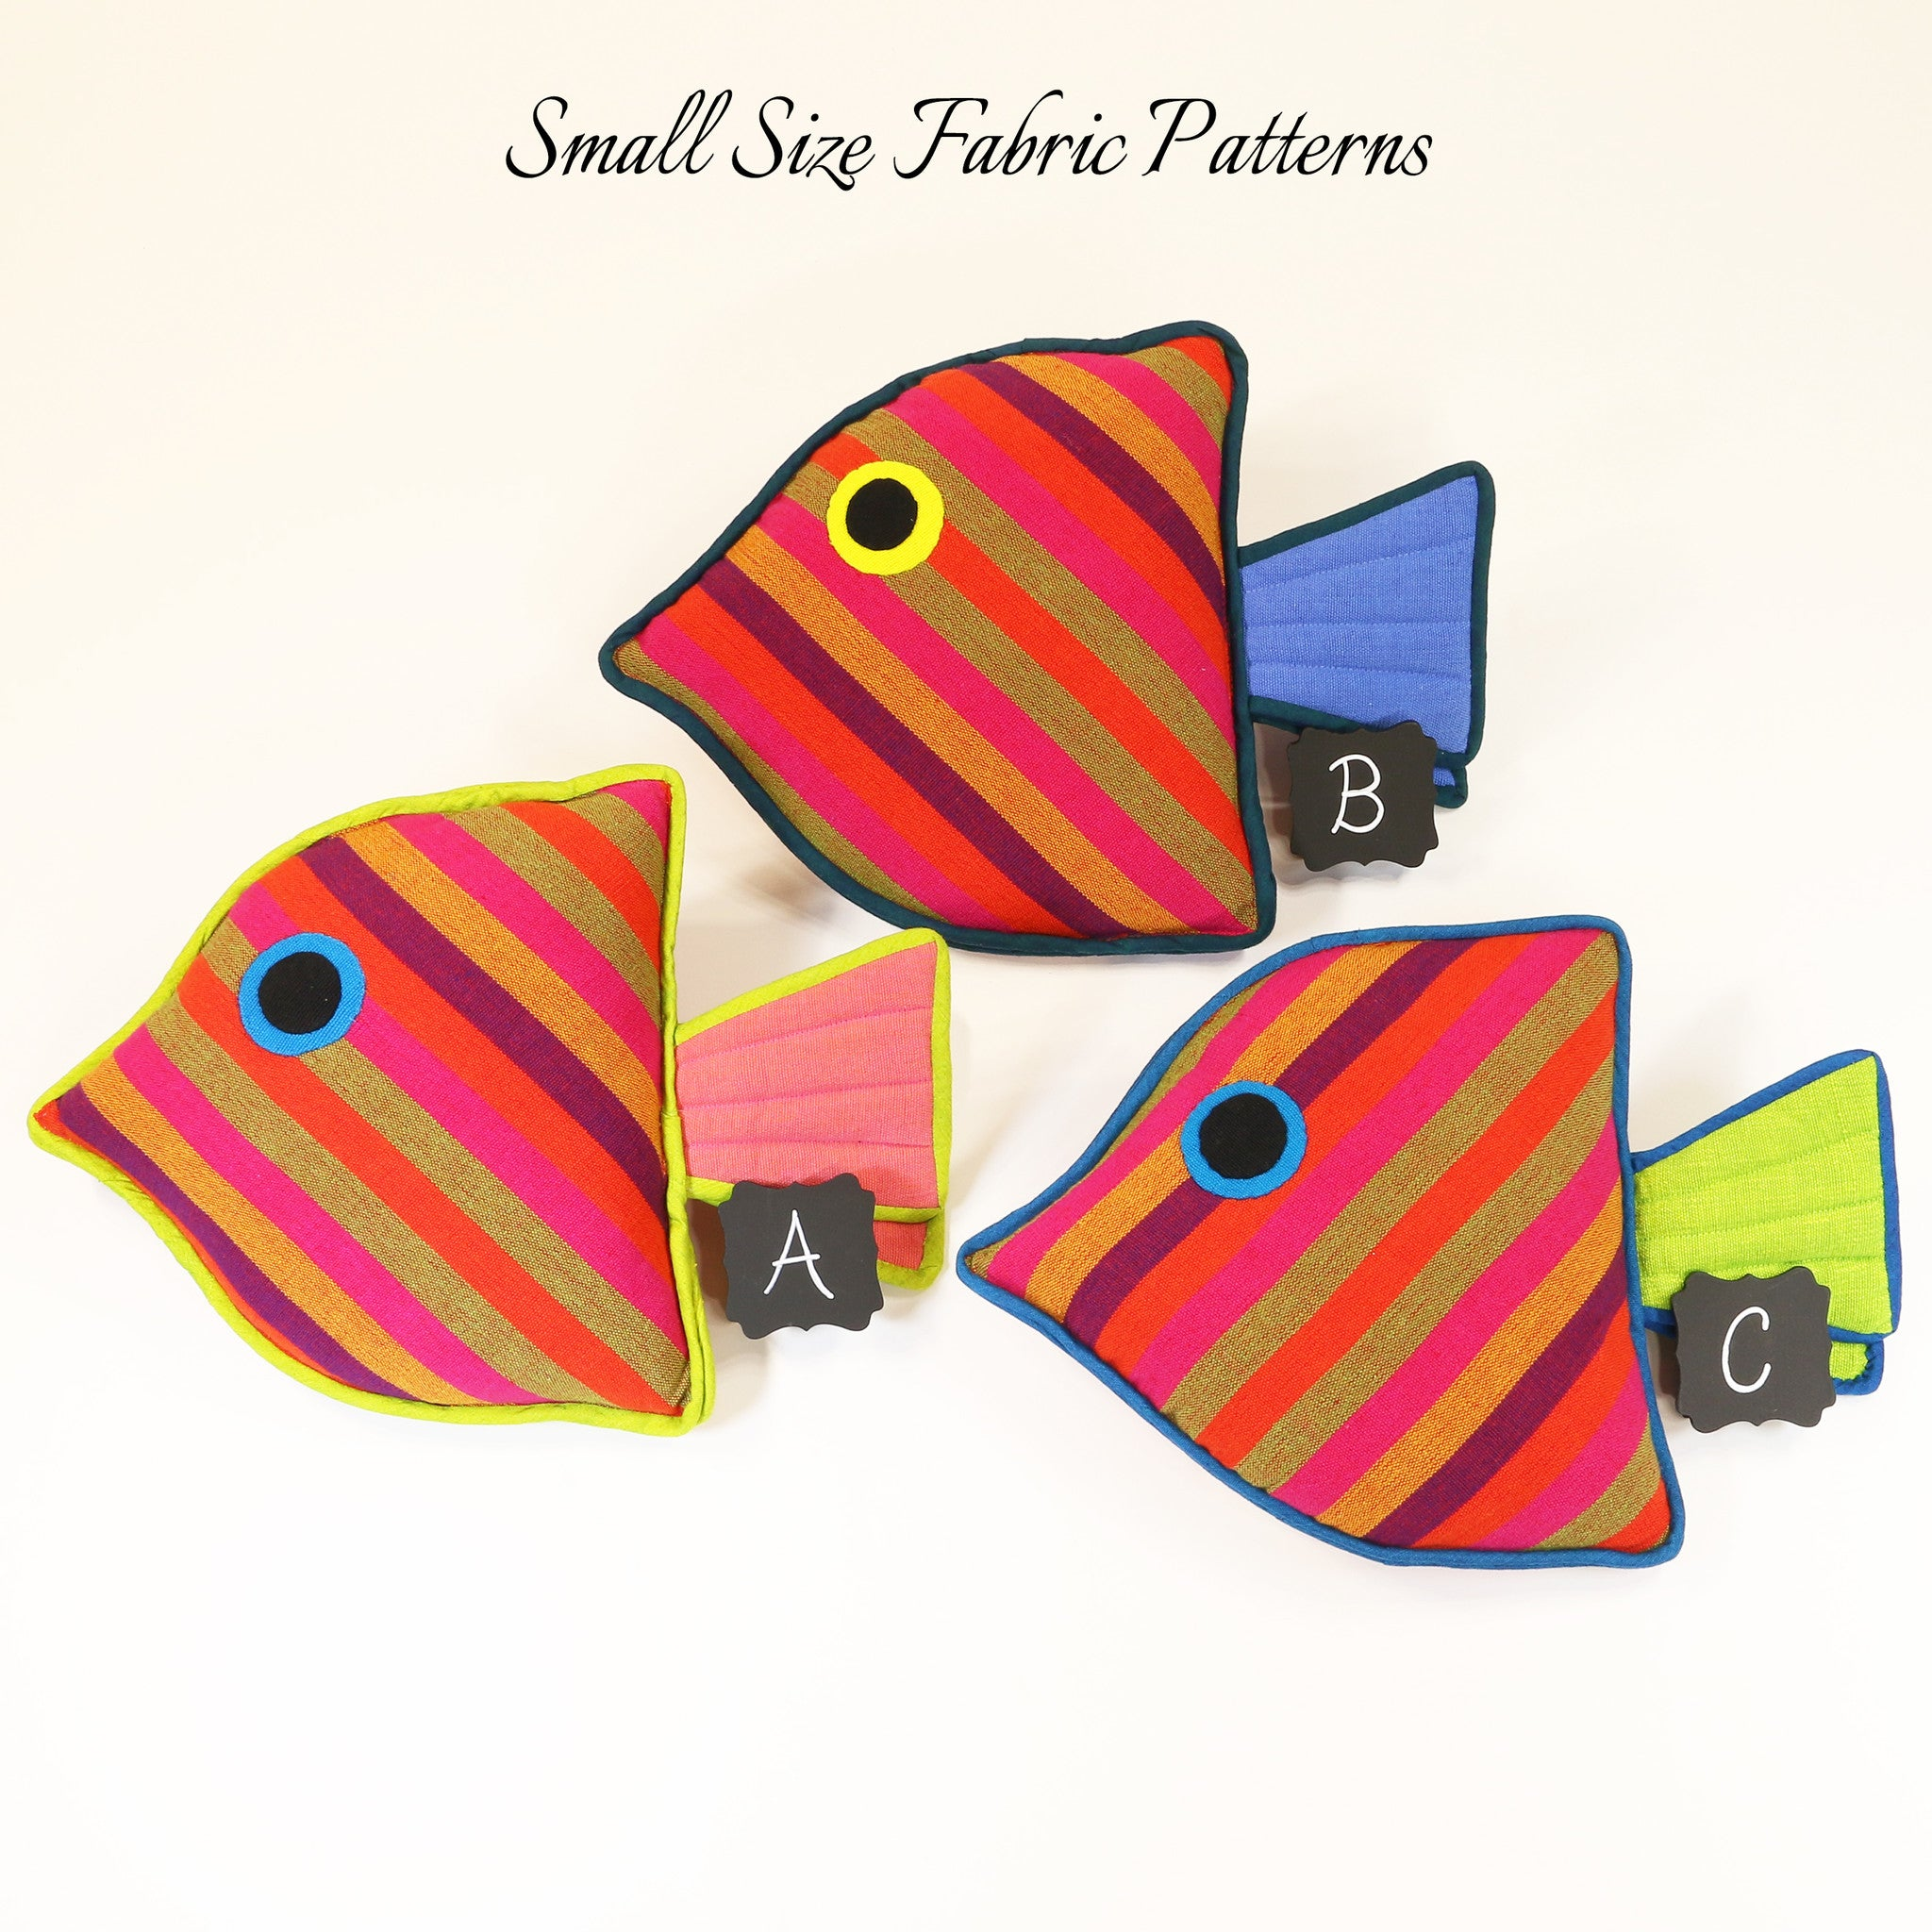 Lydia, the Juvenile Fish – all small size fabric patterns shown